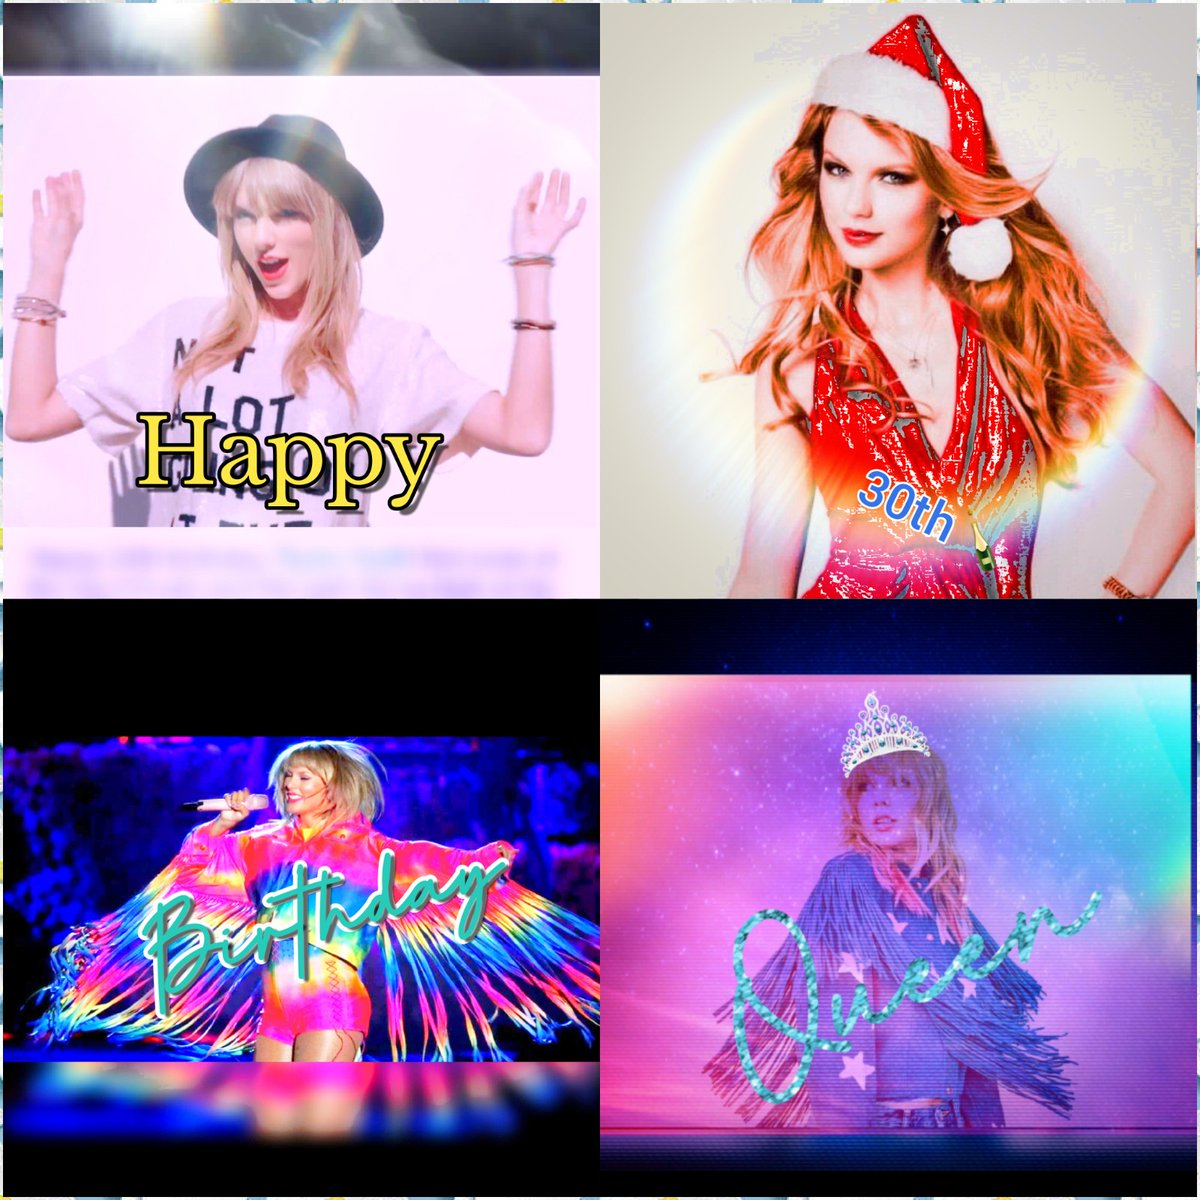 Happy 30th Birthday to the Women of the decade and my role model @taylorswift13 You are the most sweetest, caring and bravest woman Ive ever seen and Ive looked up to you since I heard your first album. I love you❤ #IStandWithTaylor #Swifies @taylornation13